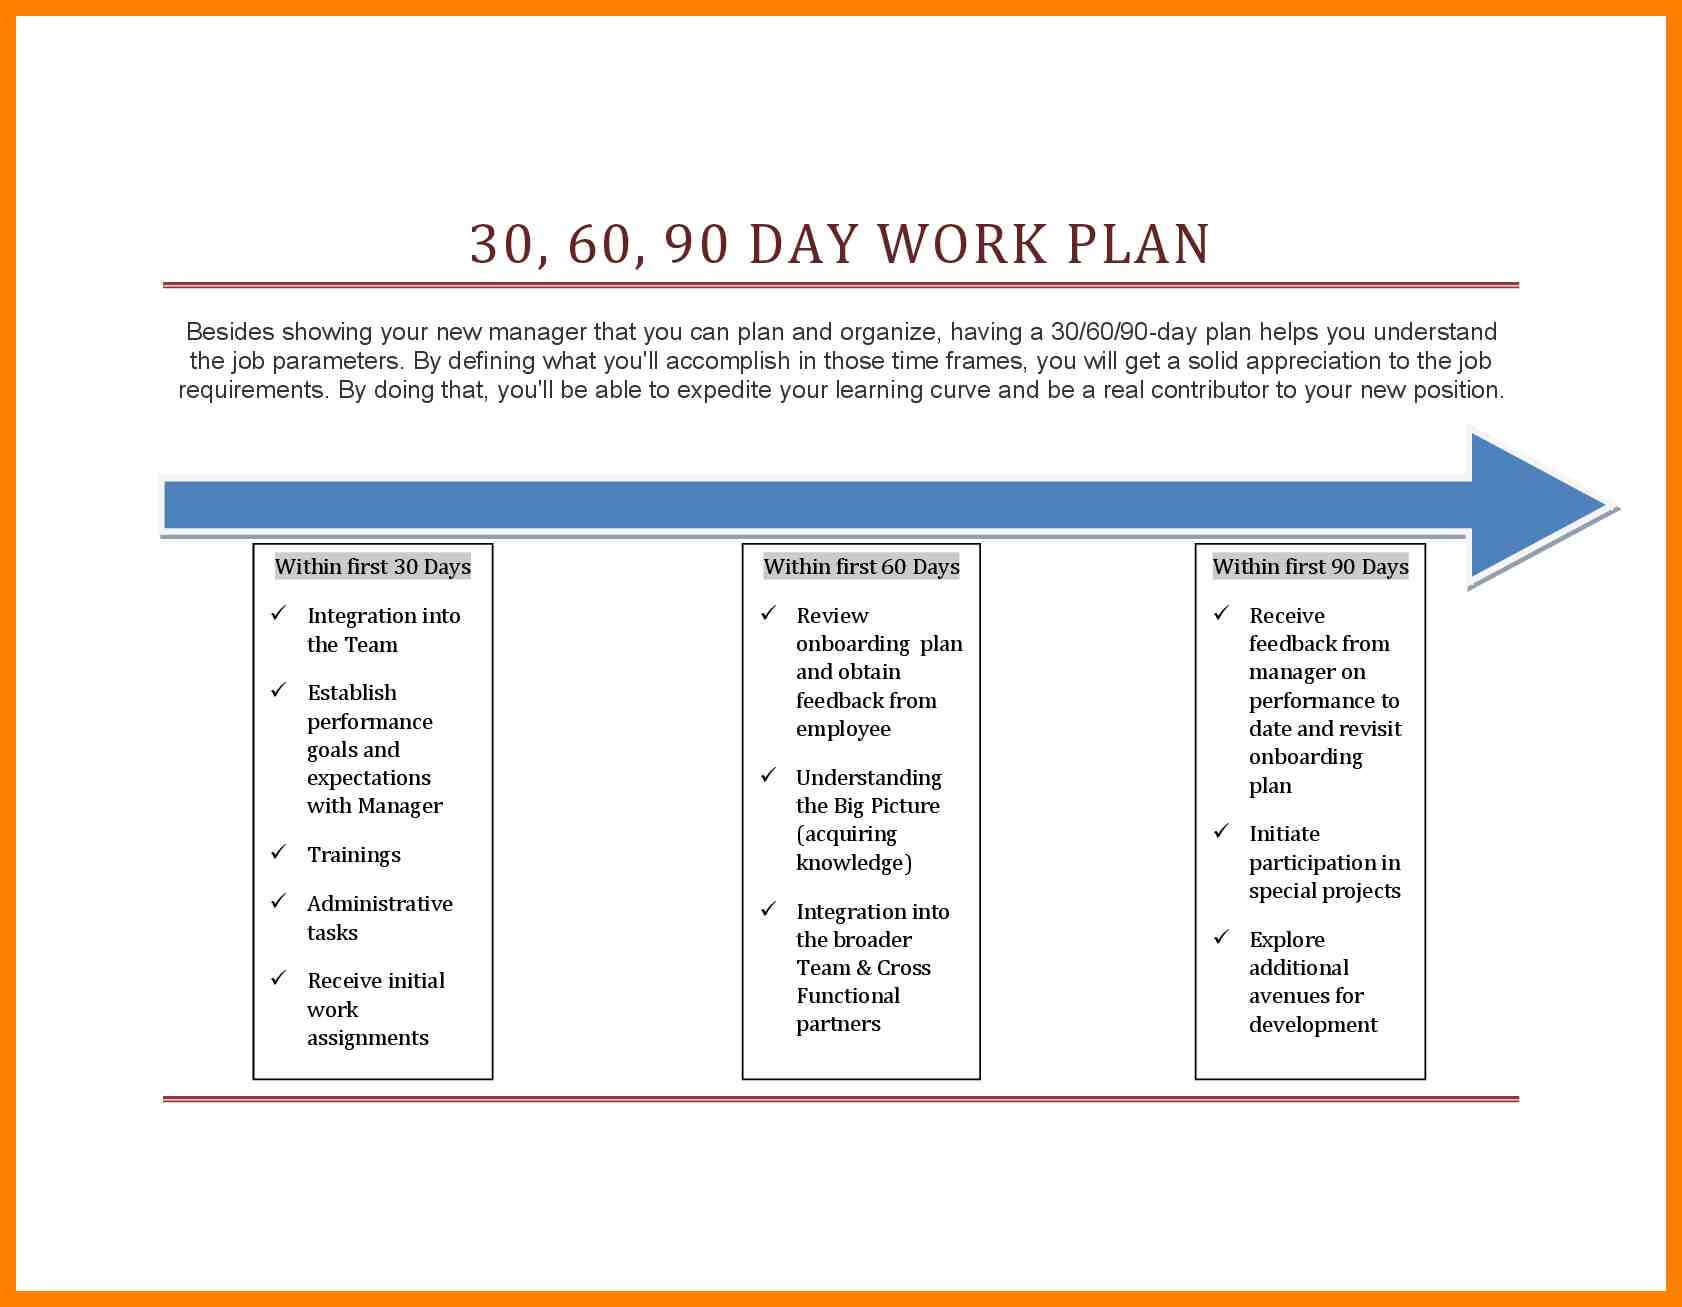 10+ 30 60 90 Day Plan Template Word | Time Table Chart Inside 30 60 90 Day Plan Template Word